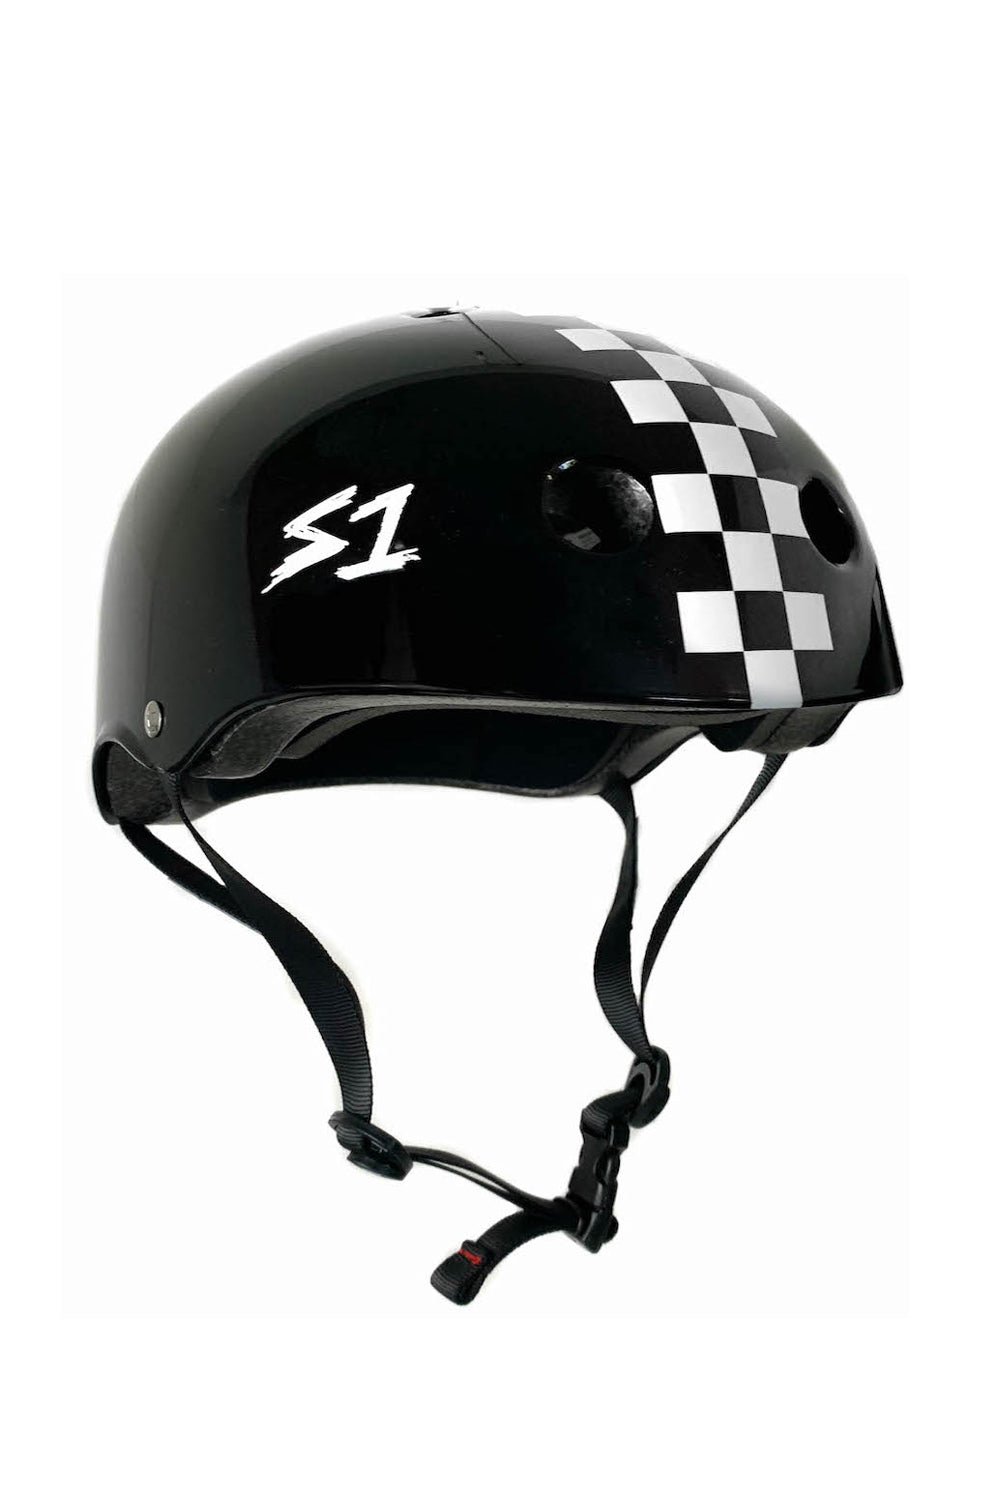 S1 Lifer Helmet - Black Gloss / White Checkers